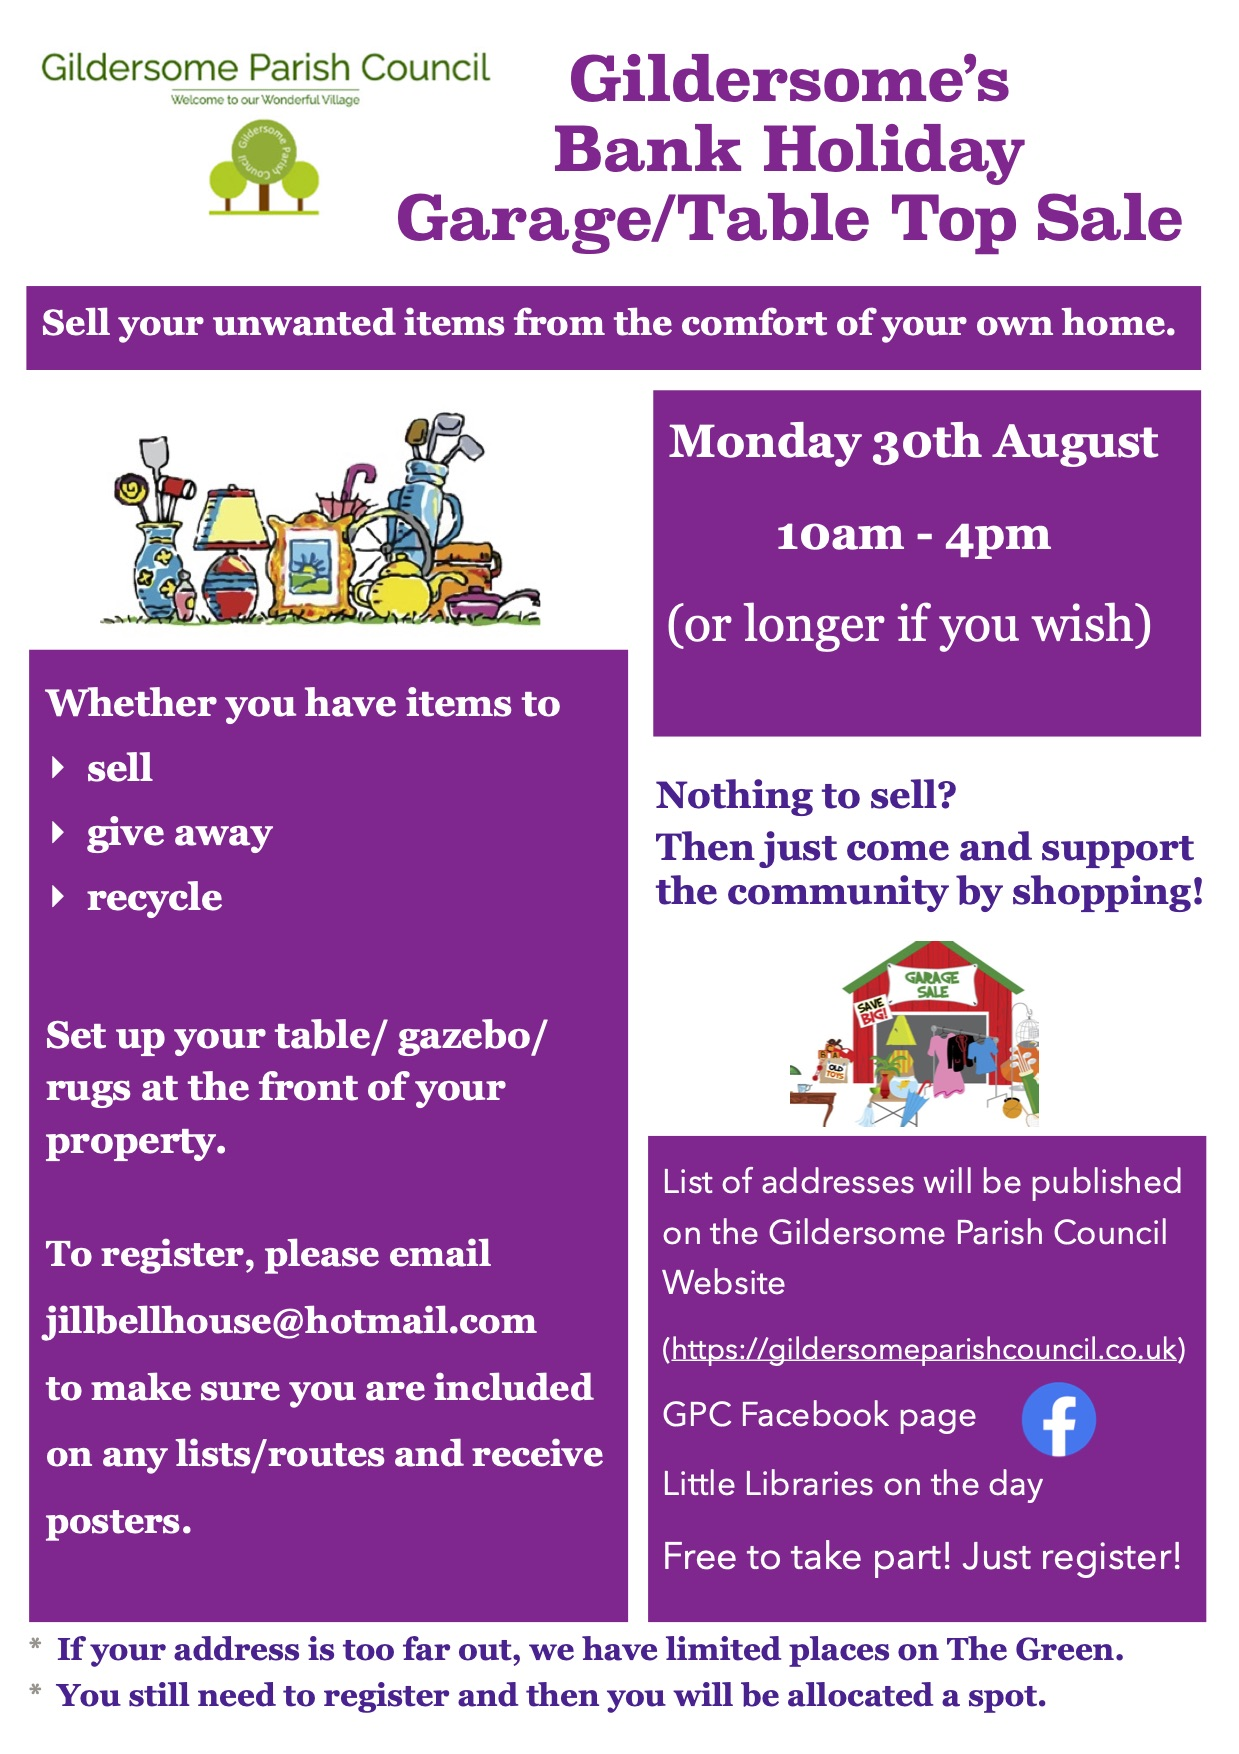 Advert for Gildersome Bank Holiday Table Top/ Garage Sale Monday 30th August 10am- 4pm